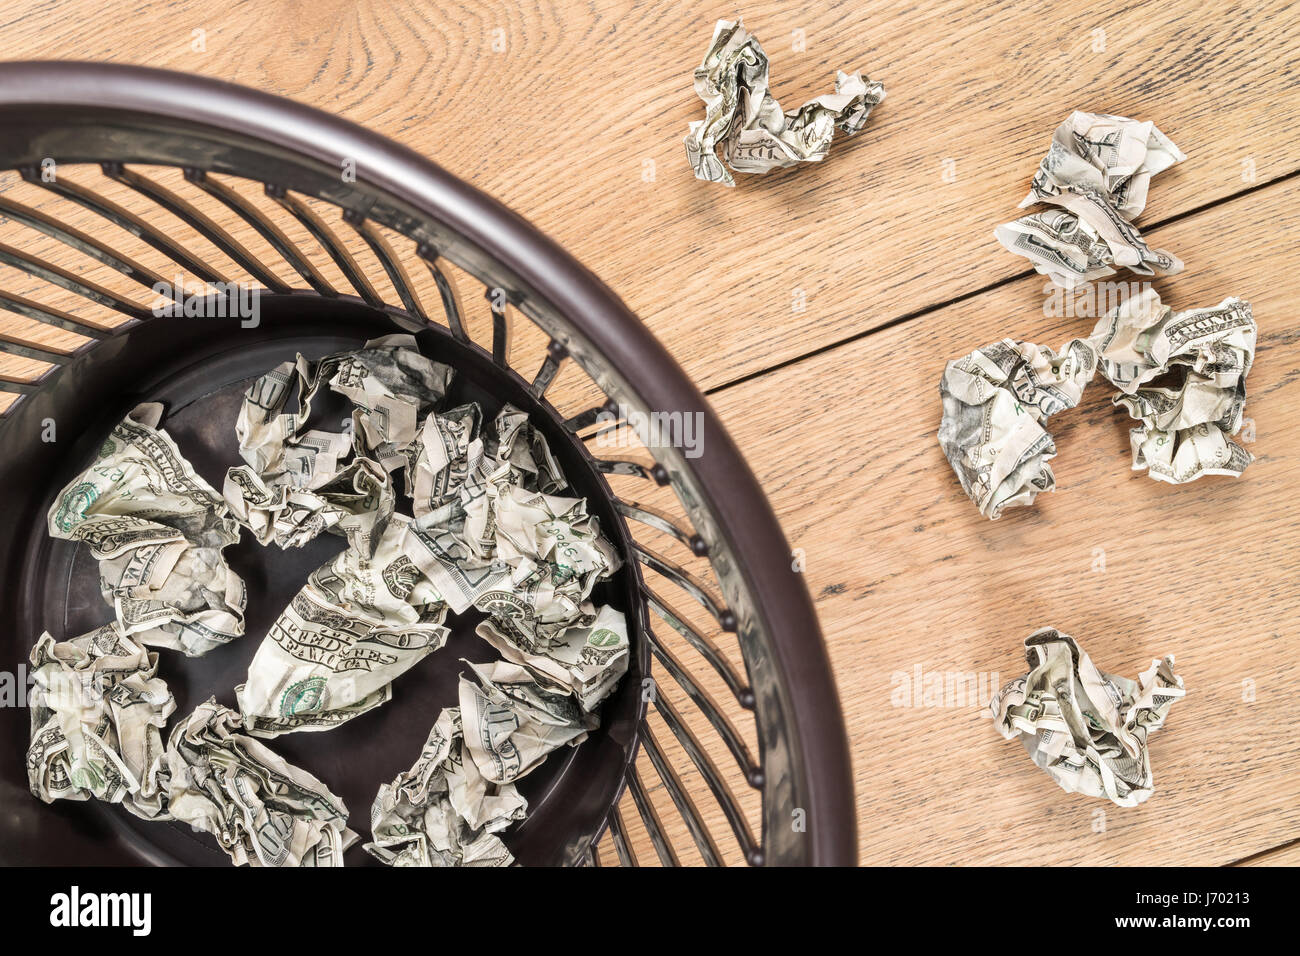 Crumpled money in trash - Stock Image